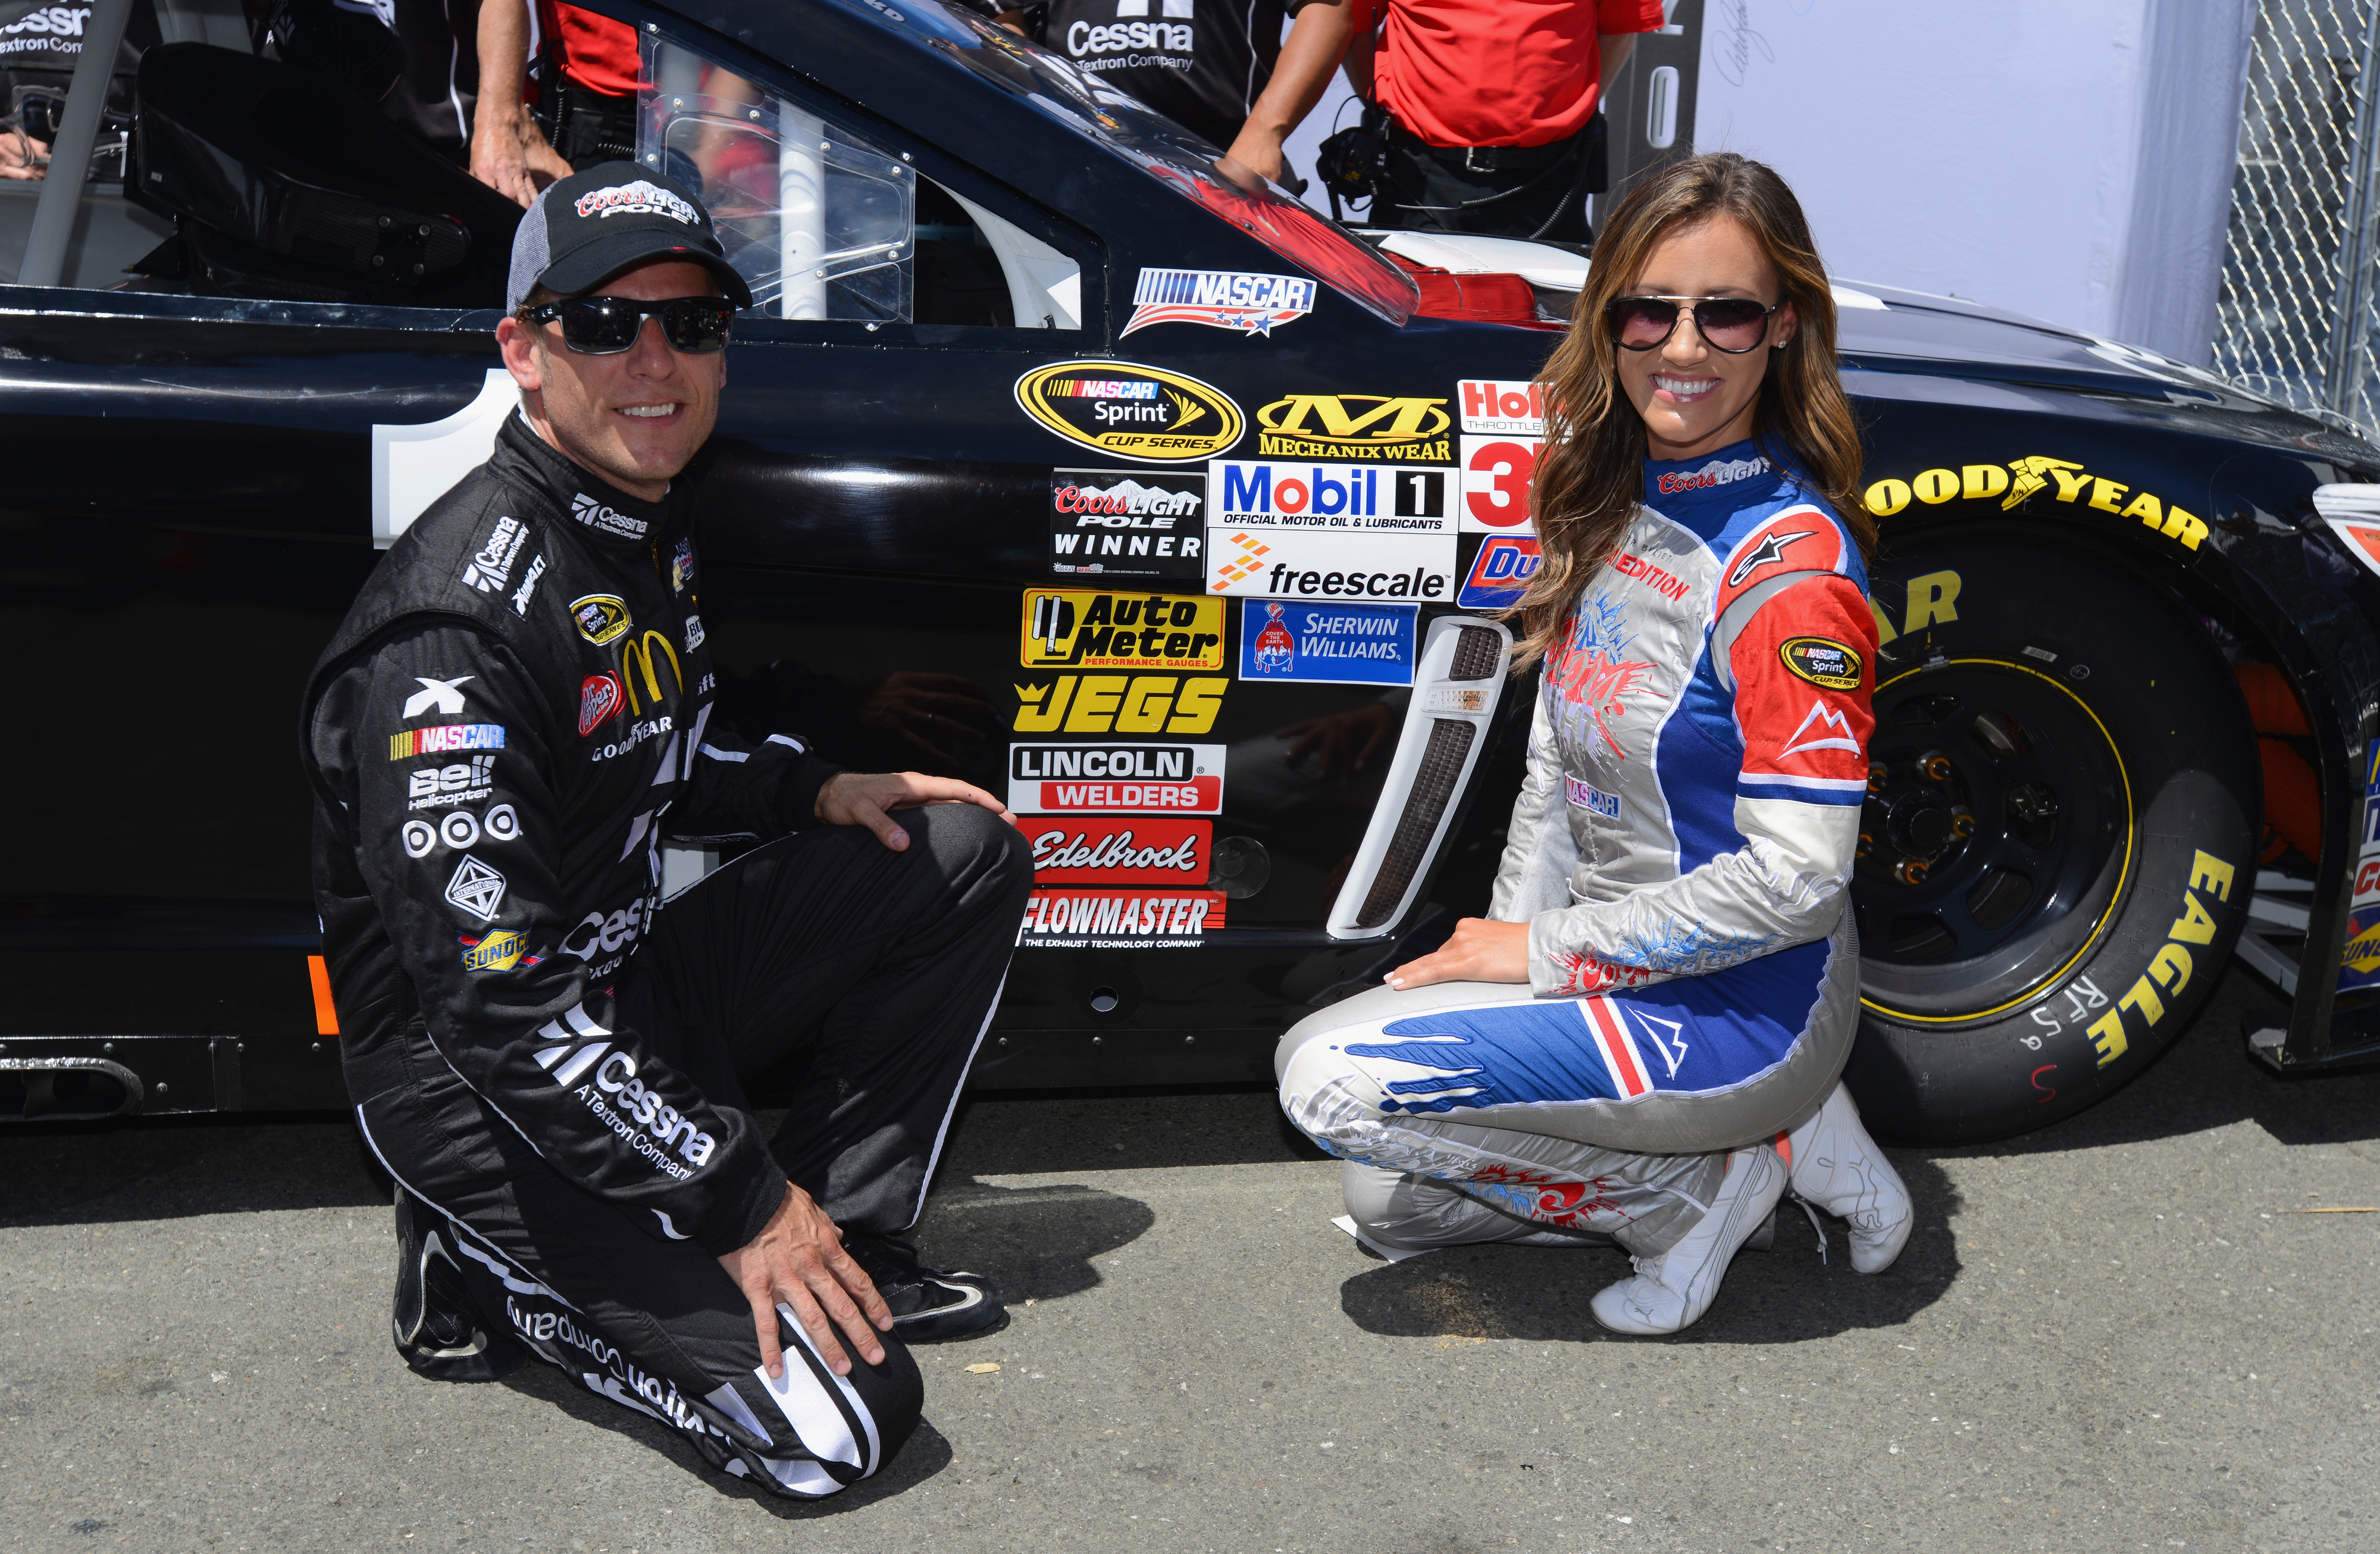 NASCAR at Sonoma Raceway 2014: Lineup, starting grid for Toyota/Save Mart 350